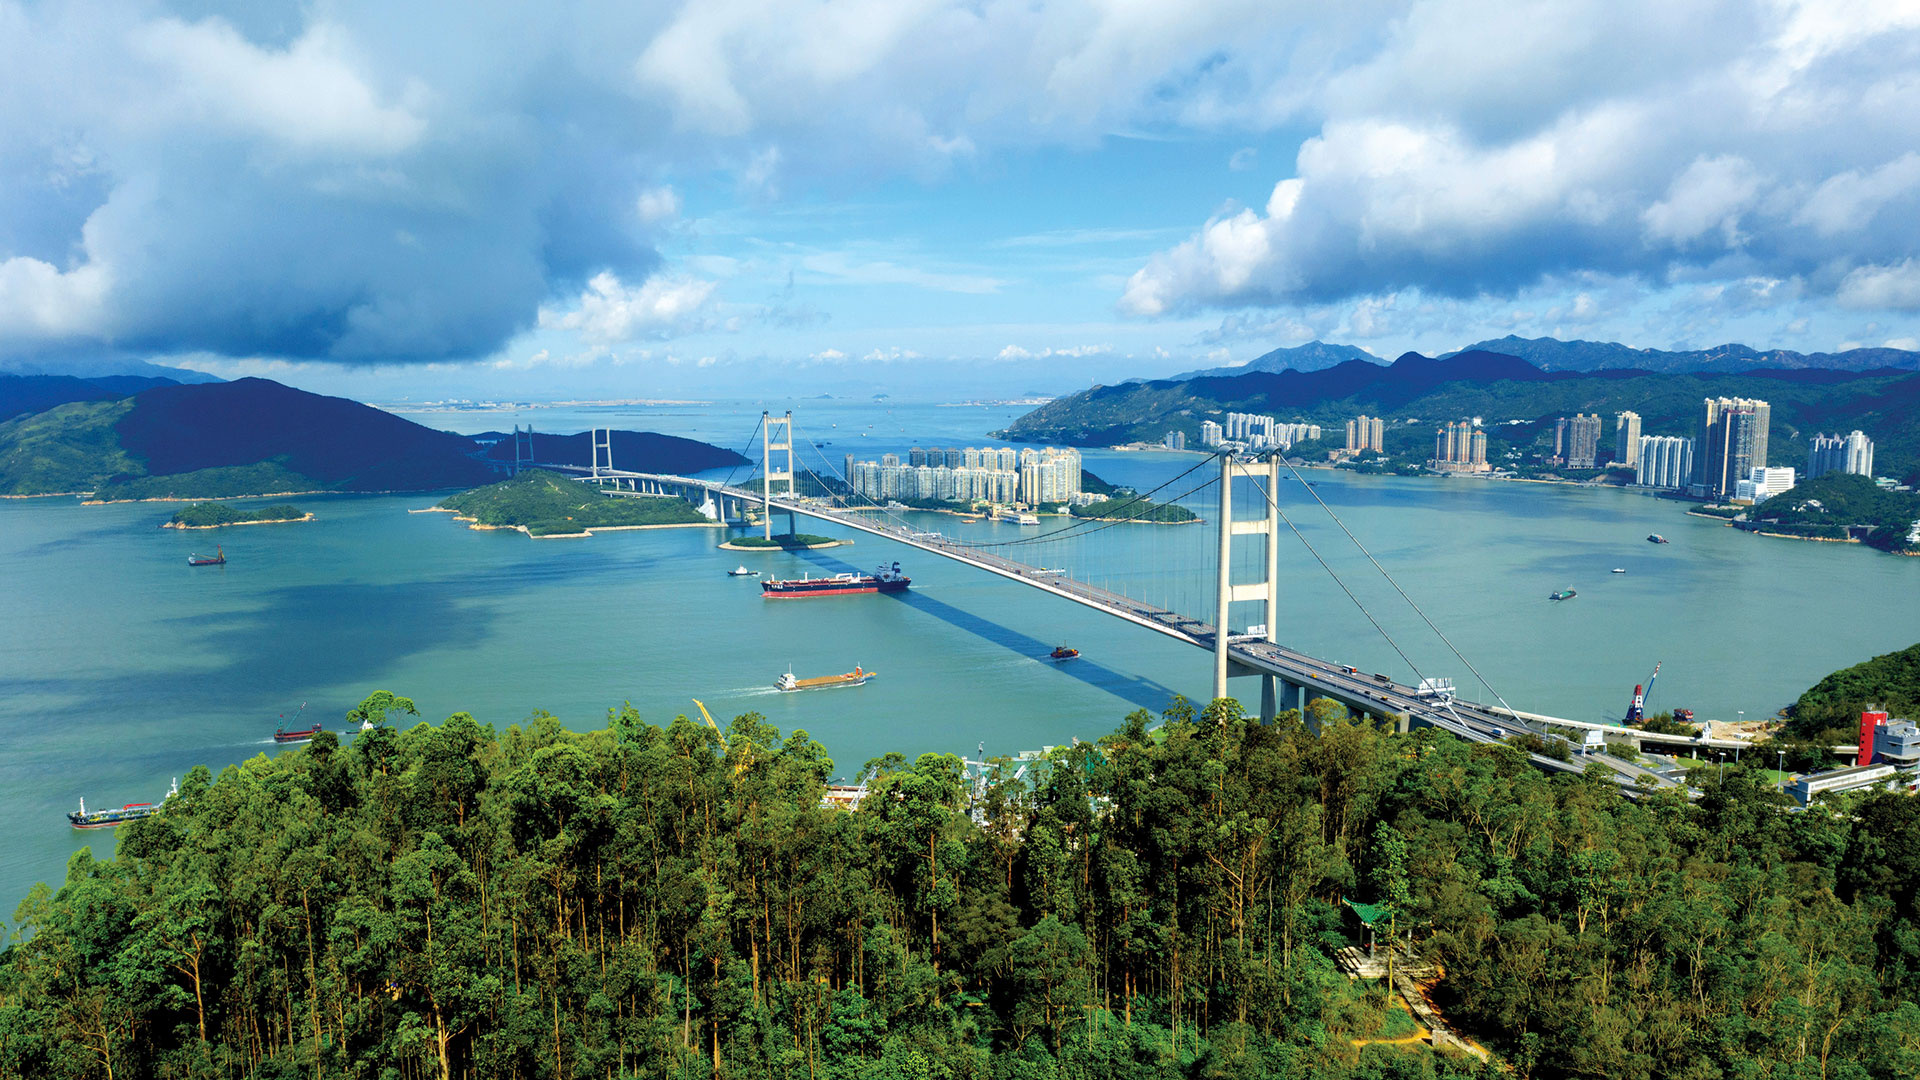 Tsing Yi Nature Trails: climb to the top for a stunning view of the sea, mountains and bridges